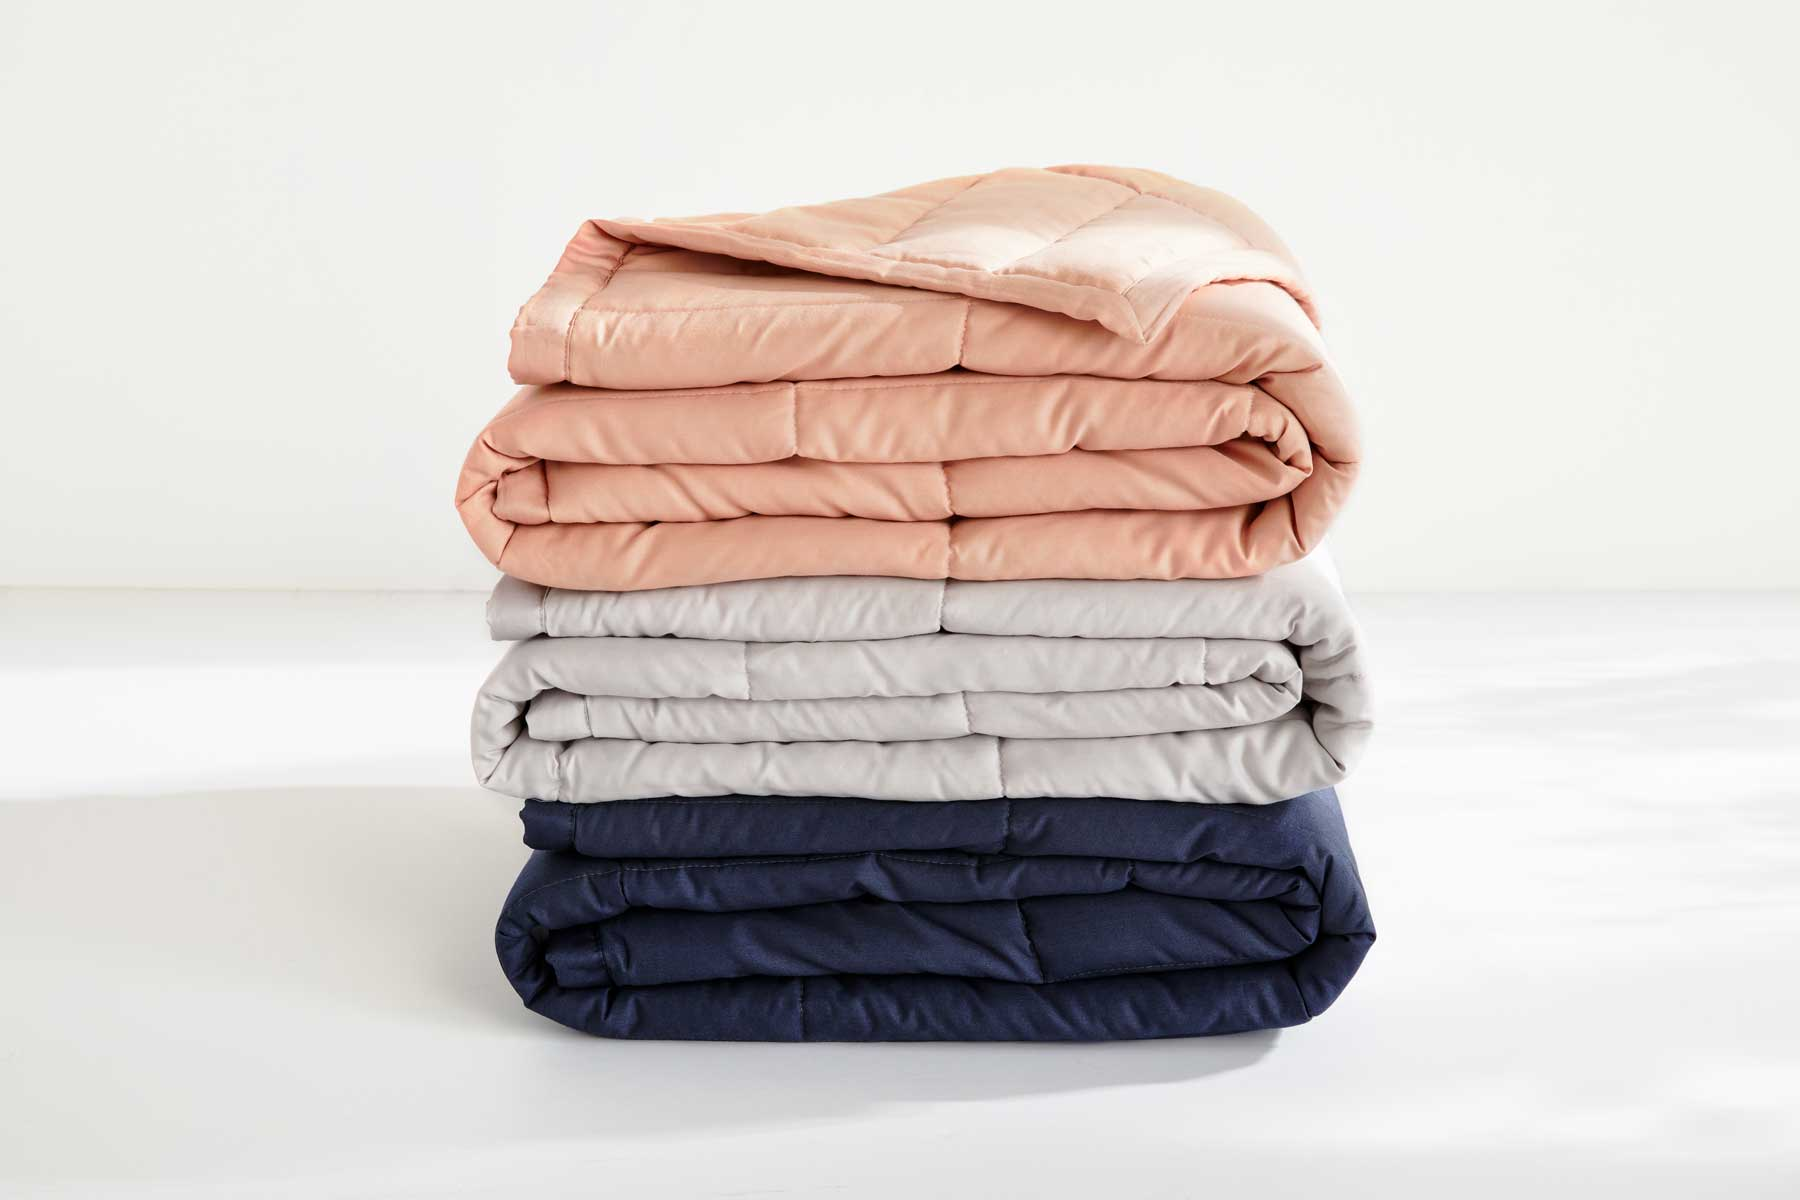 Three blankets stacked